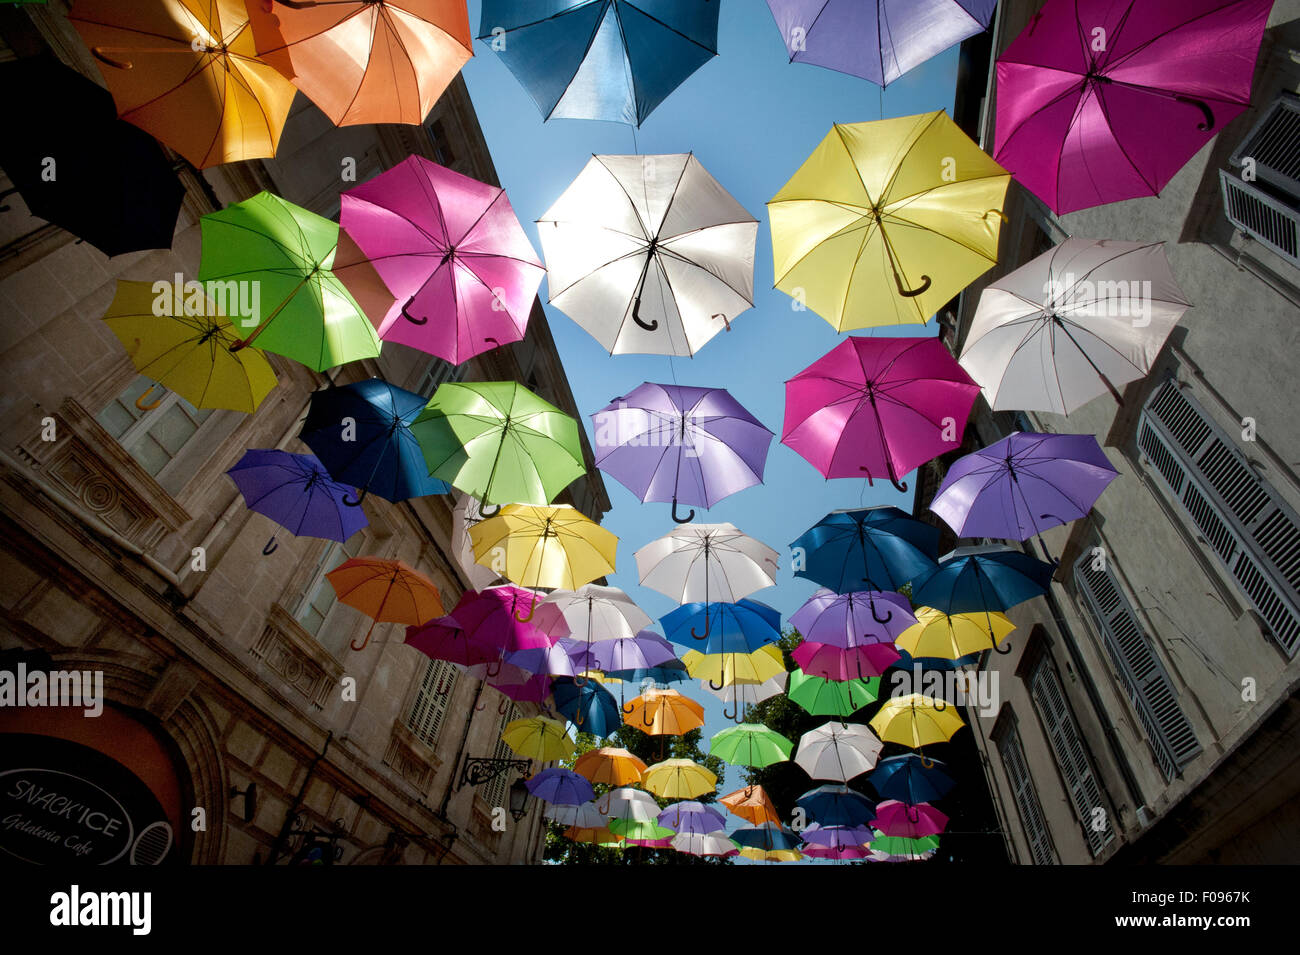 A sea of Brightly coloured floating umbrellas fill the sky above Rue Jean Jaures in Arles, Provence, South of France. - Stock Image